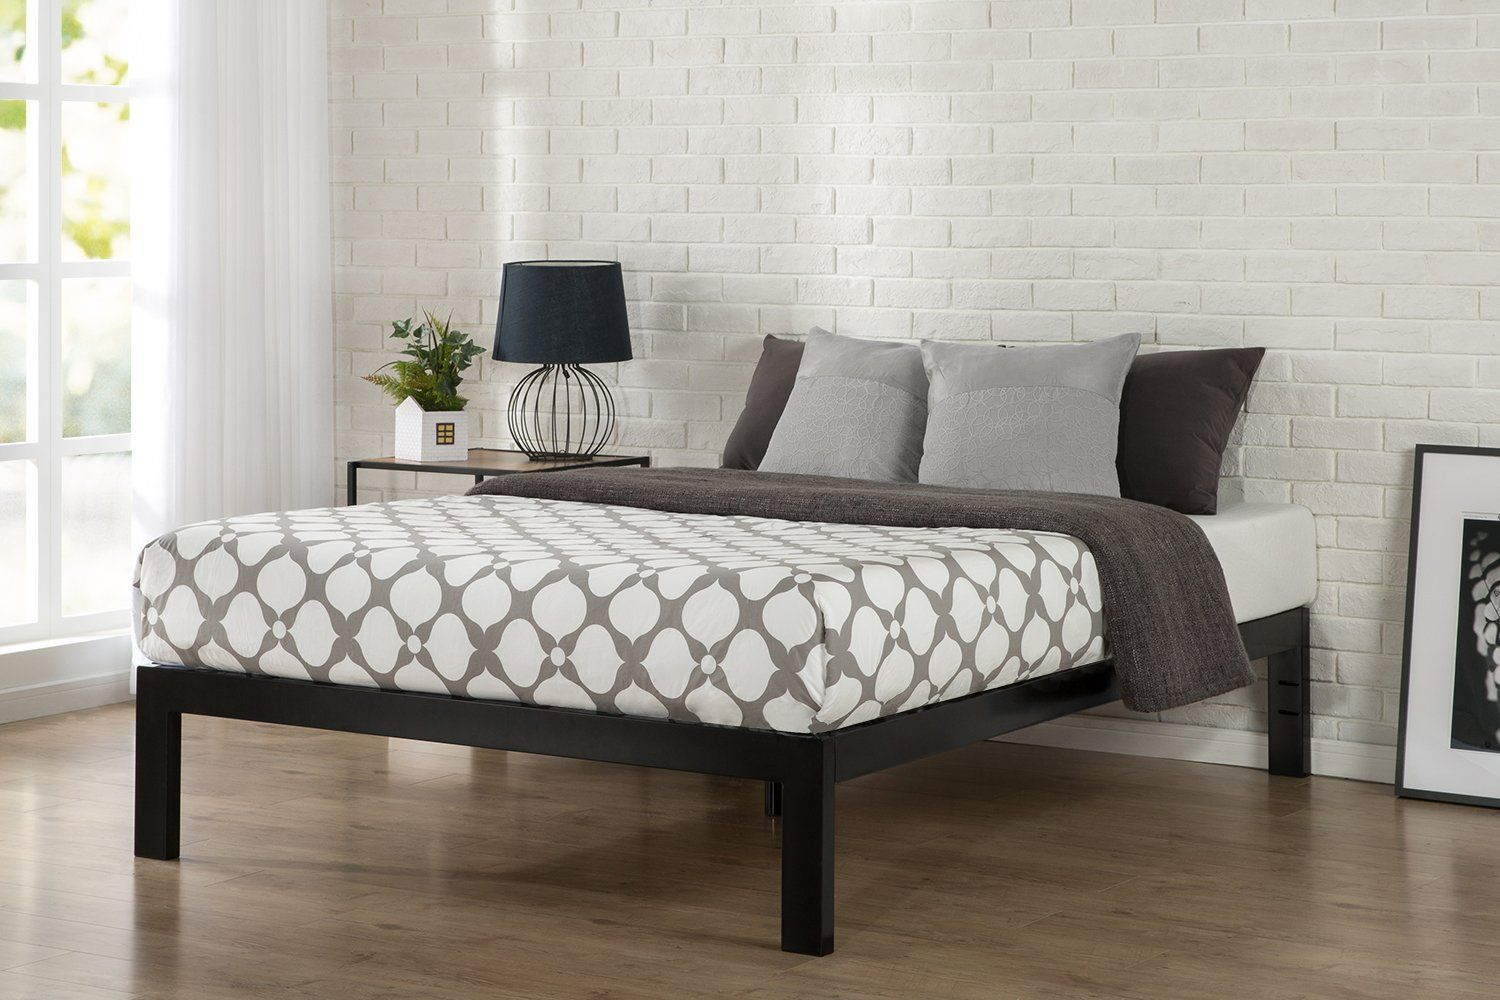 N Attach It To Any Headboard That Meets The Same Measurements Of